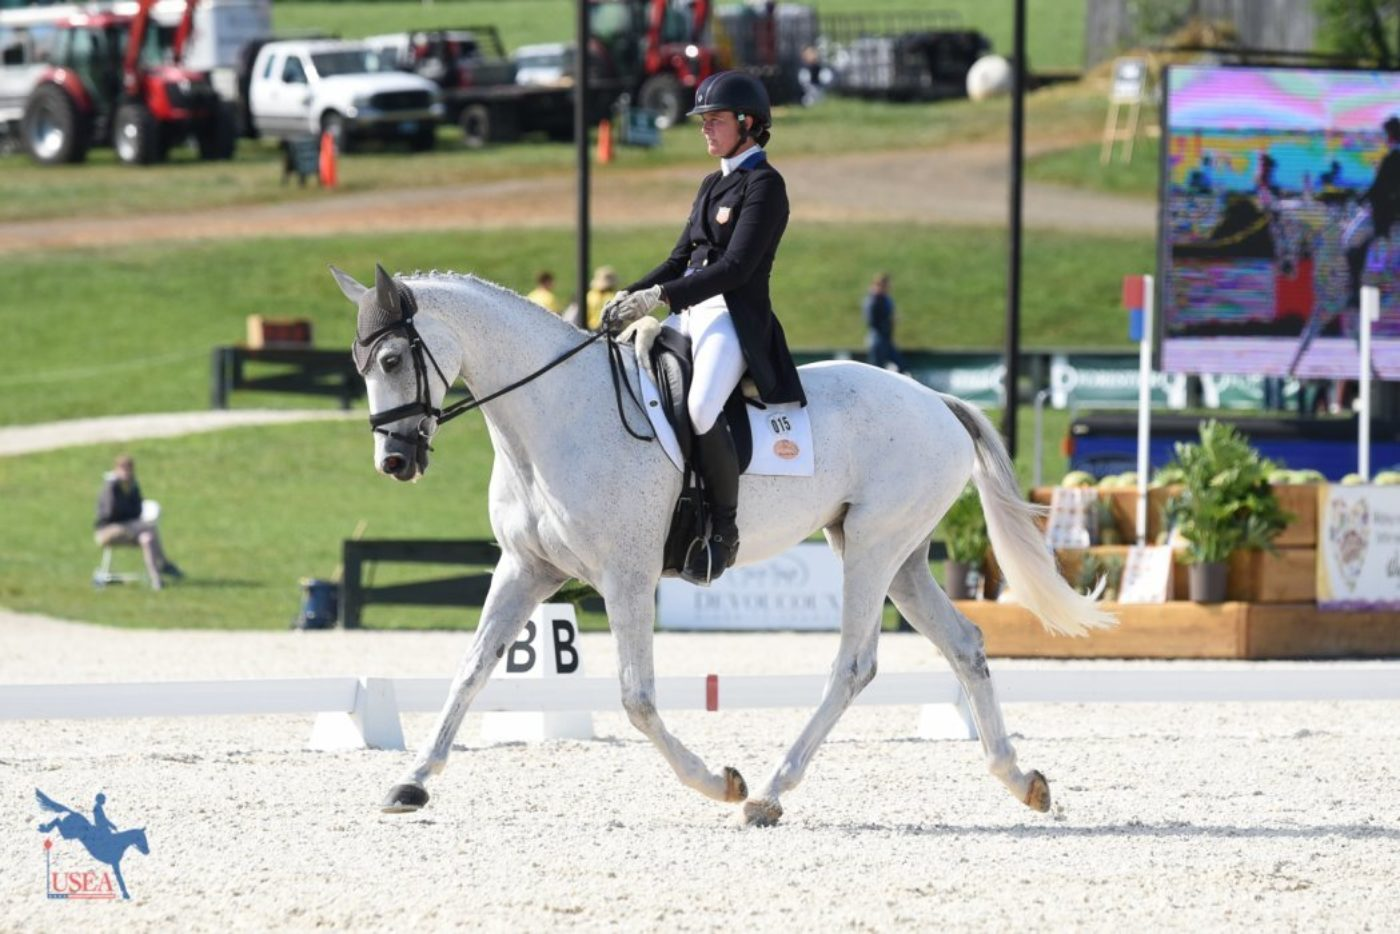 23rd - Lauren Kieffer and Landmark's Monte Carlo - 35.4